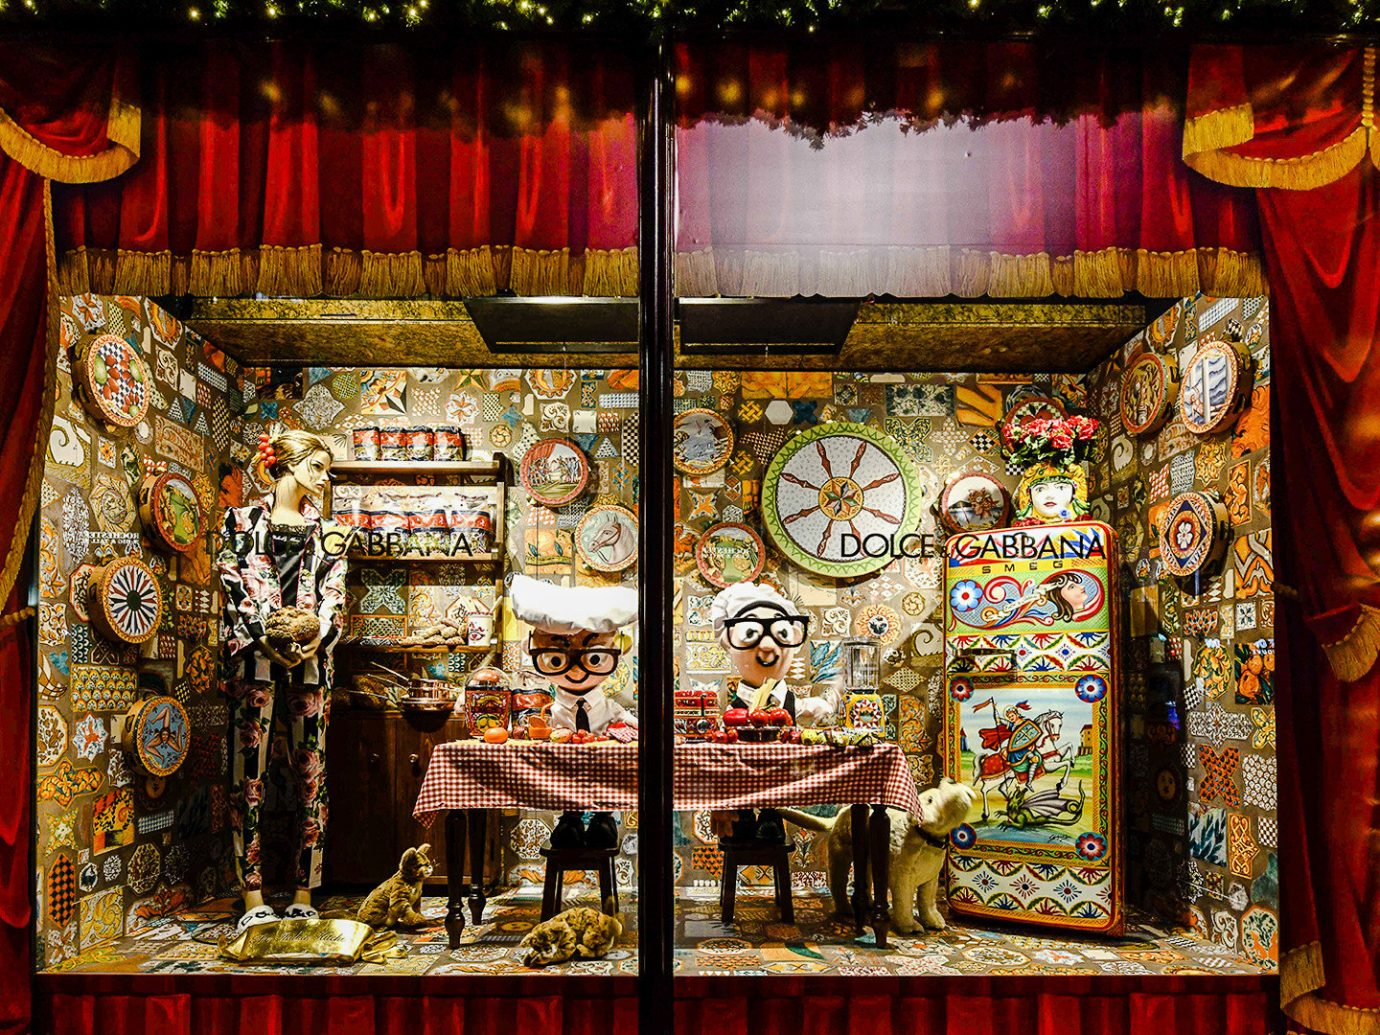 Offbeat Winter stage colorful tradition lighting shrine decorated display window window art theatre christmas decoration theatrical scenery fête night decor bazaar christmas lights different colored altar